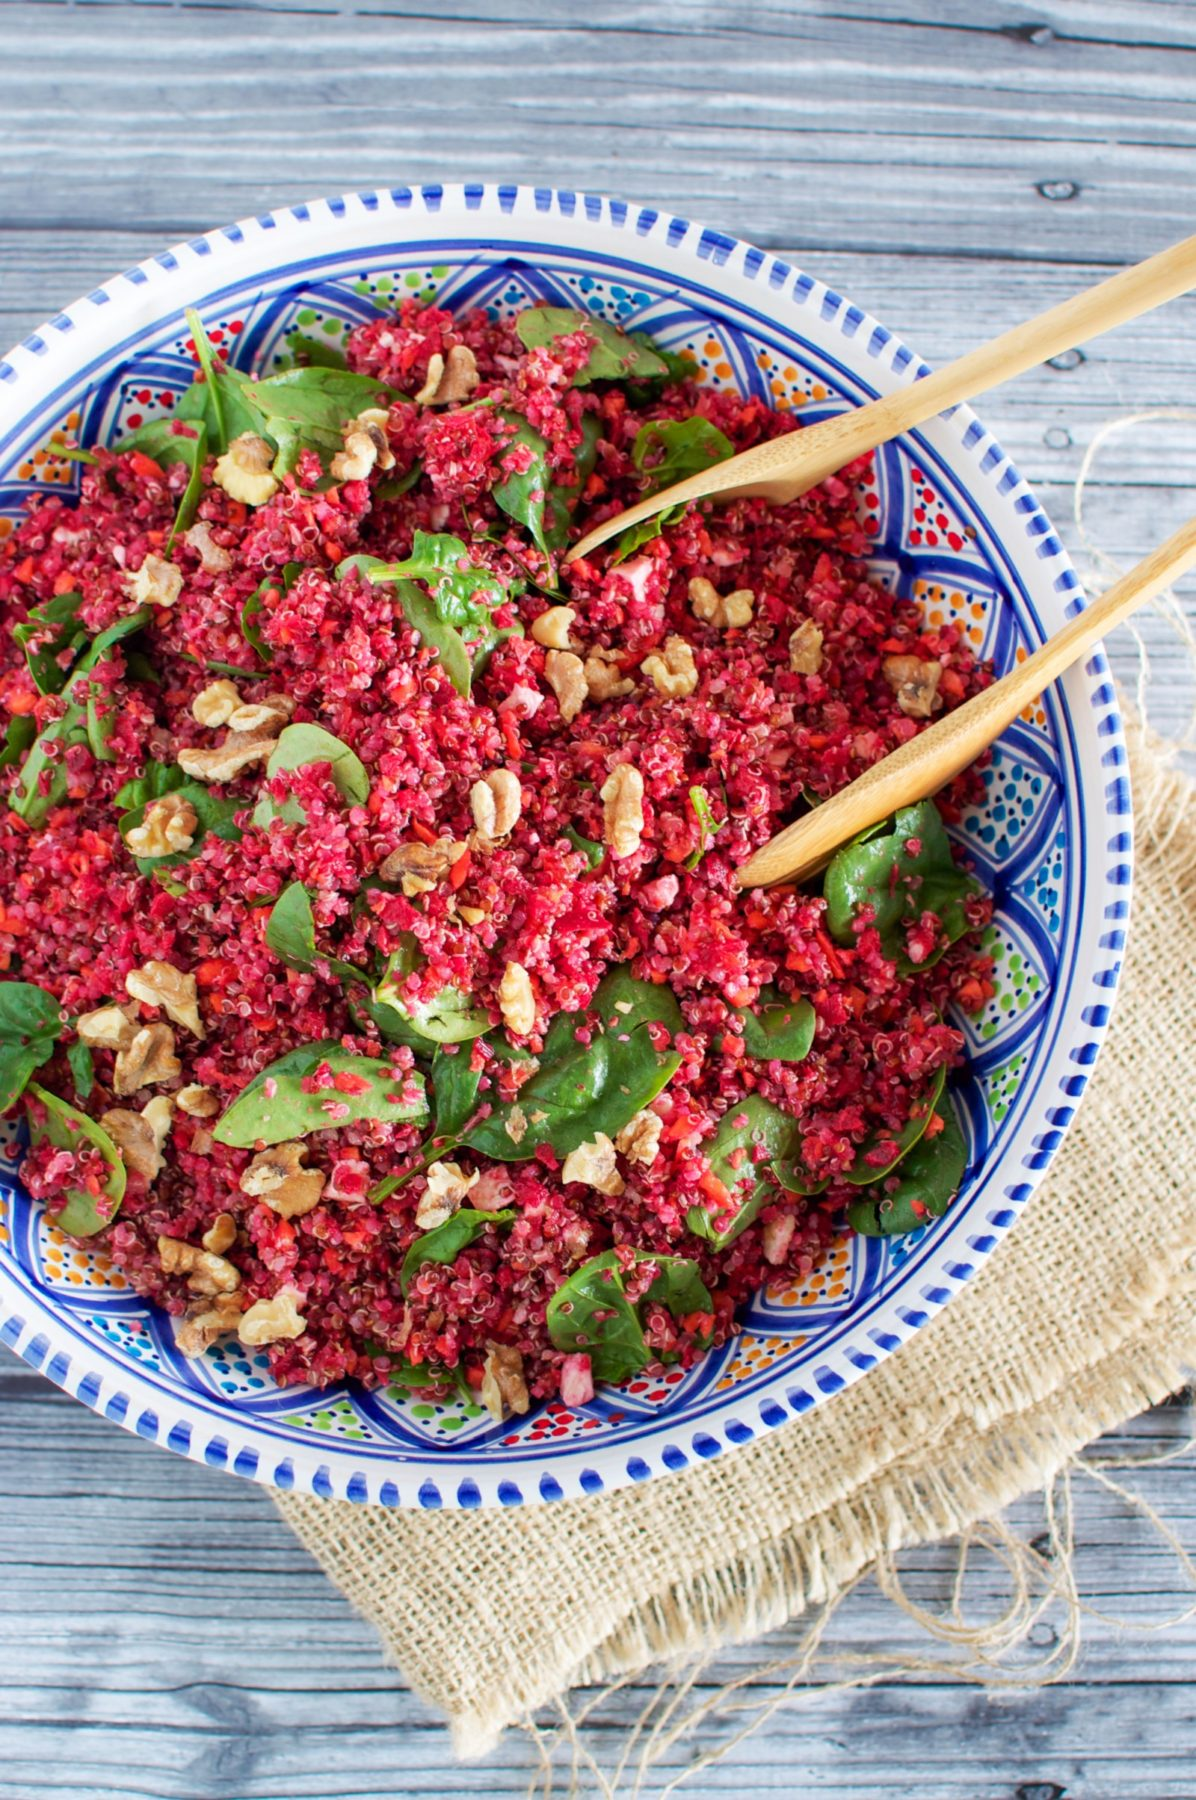 Pink quinoa salad with walnuts